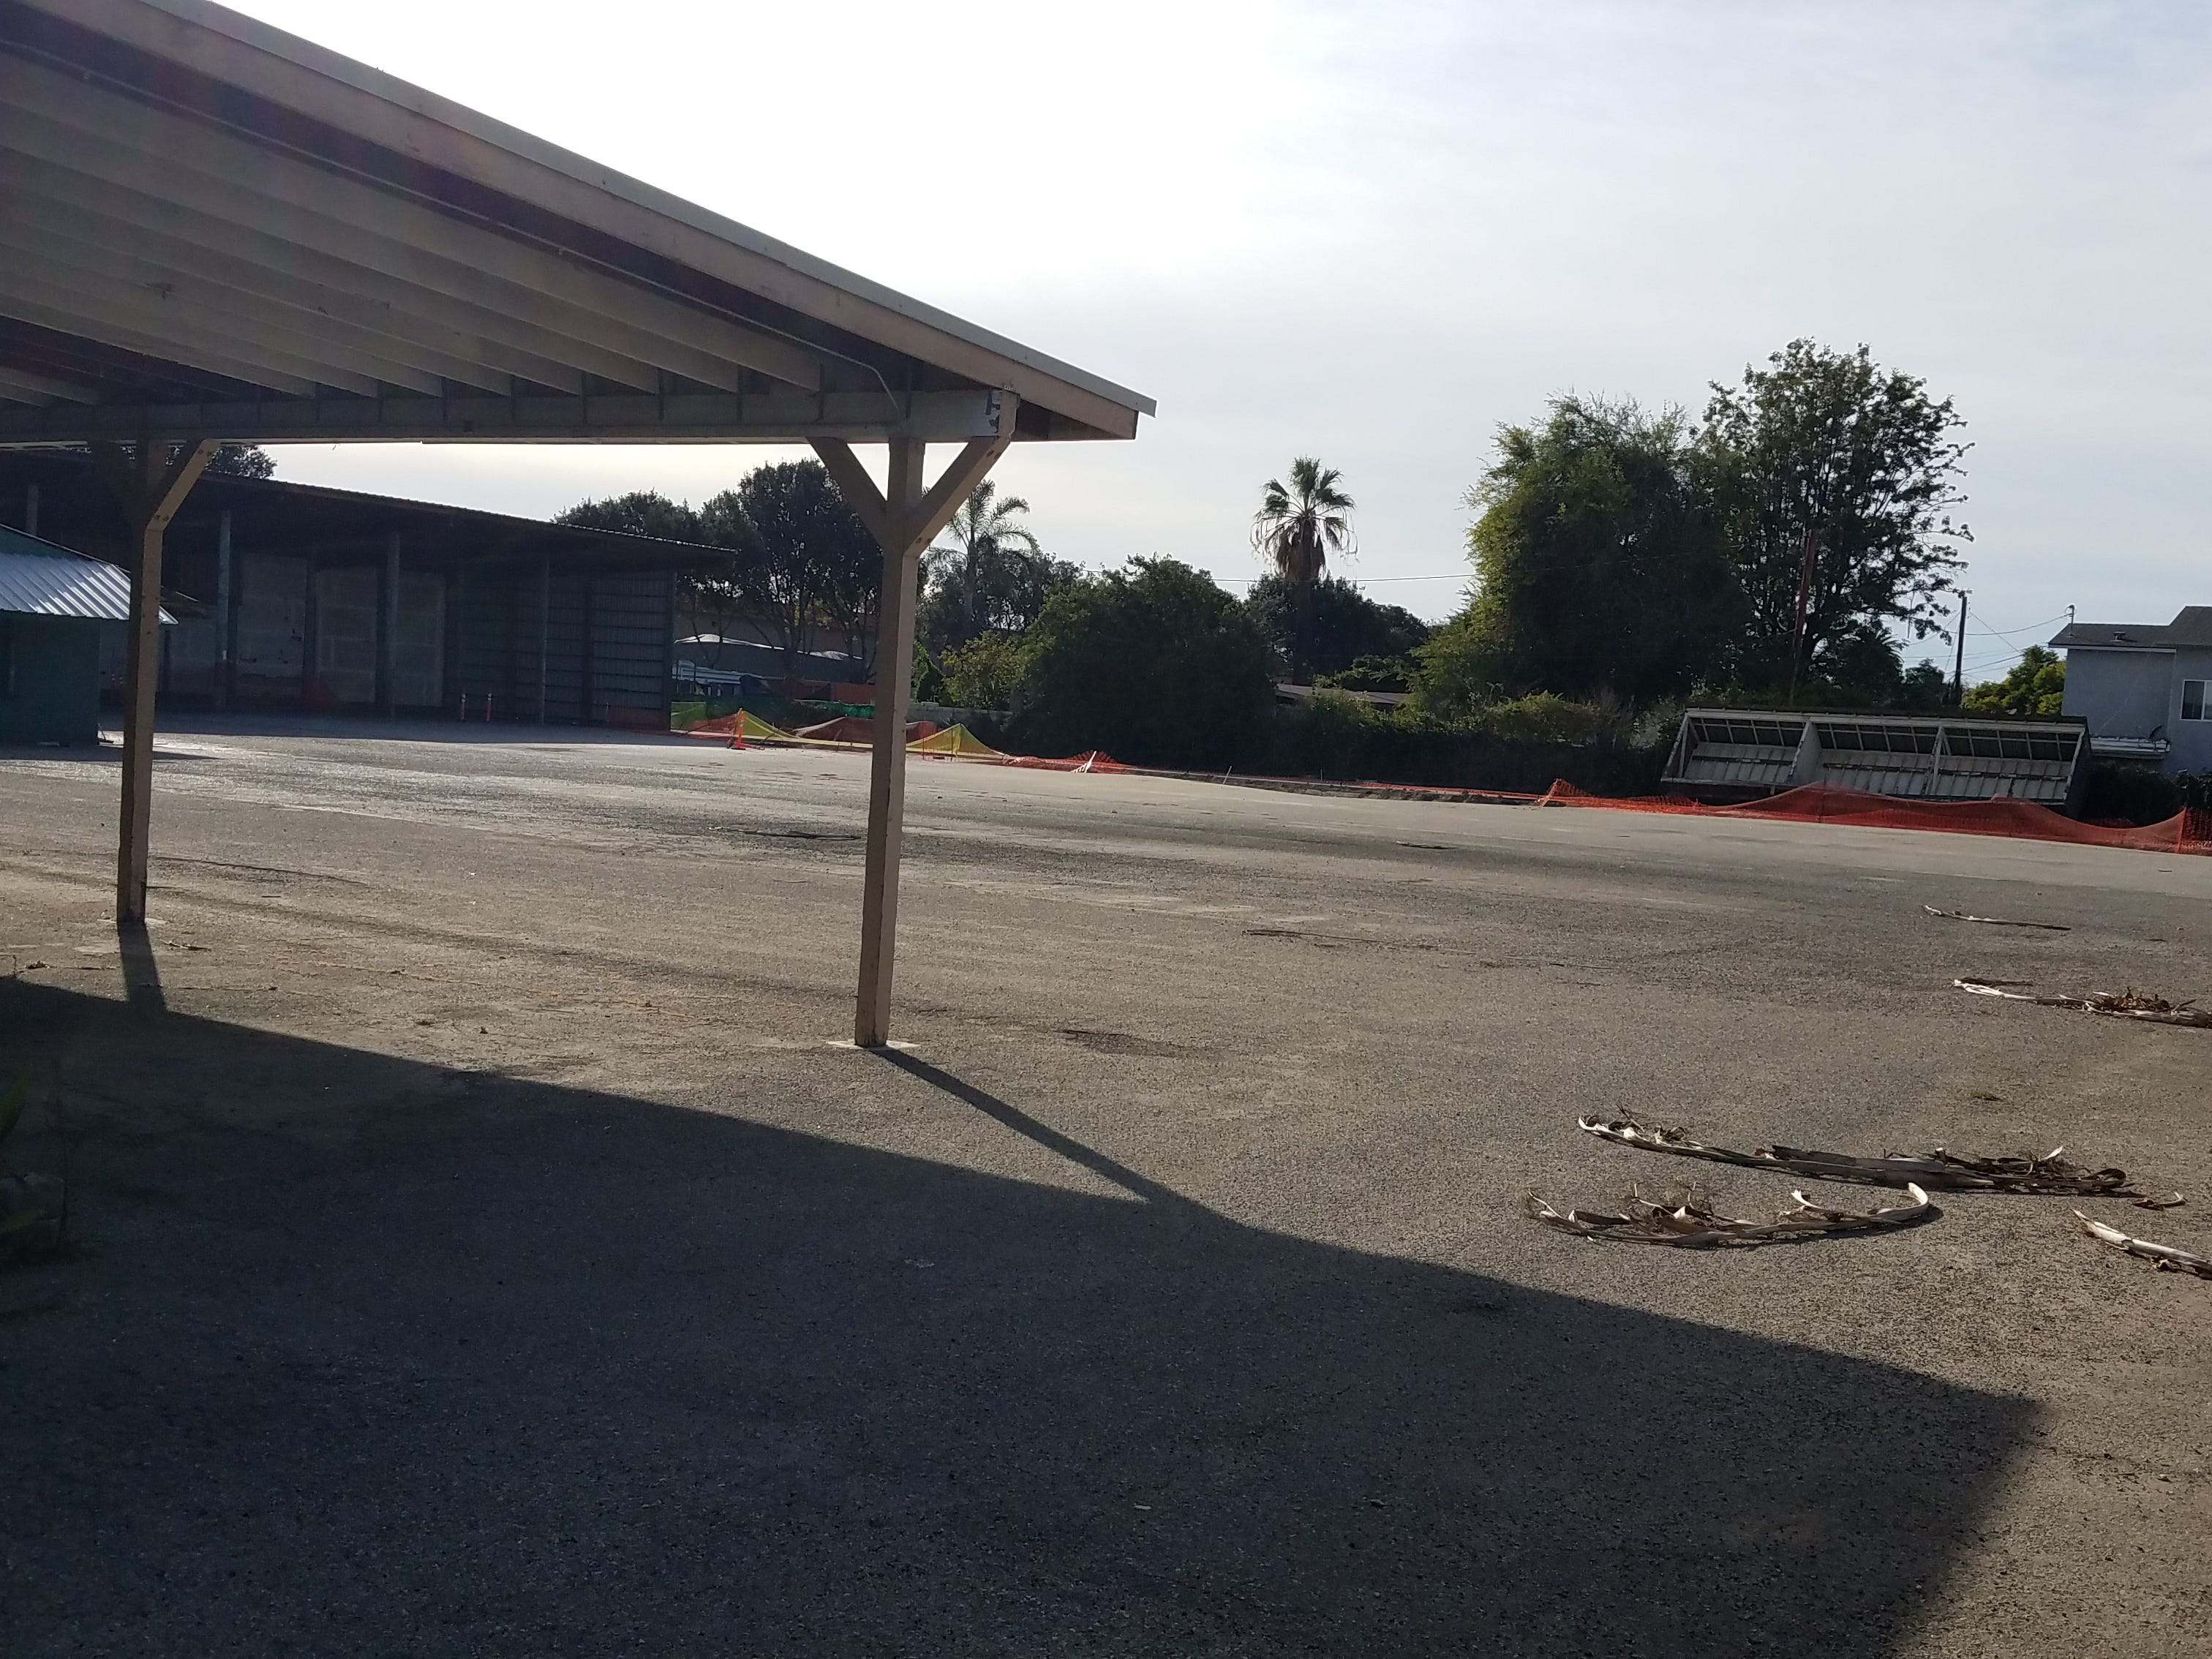 The 2.52-acre site of the shuttered Stock Building Supply at 2800 Barry St. in Camarillo was acquired by the city  to be developed into affordable housing.